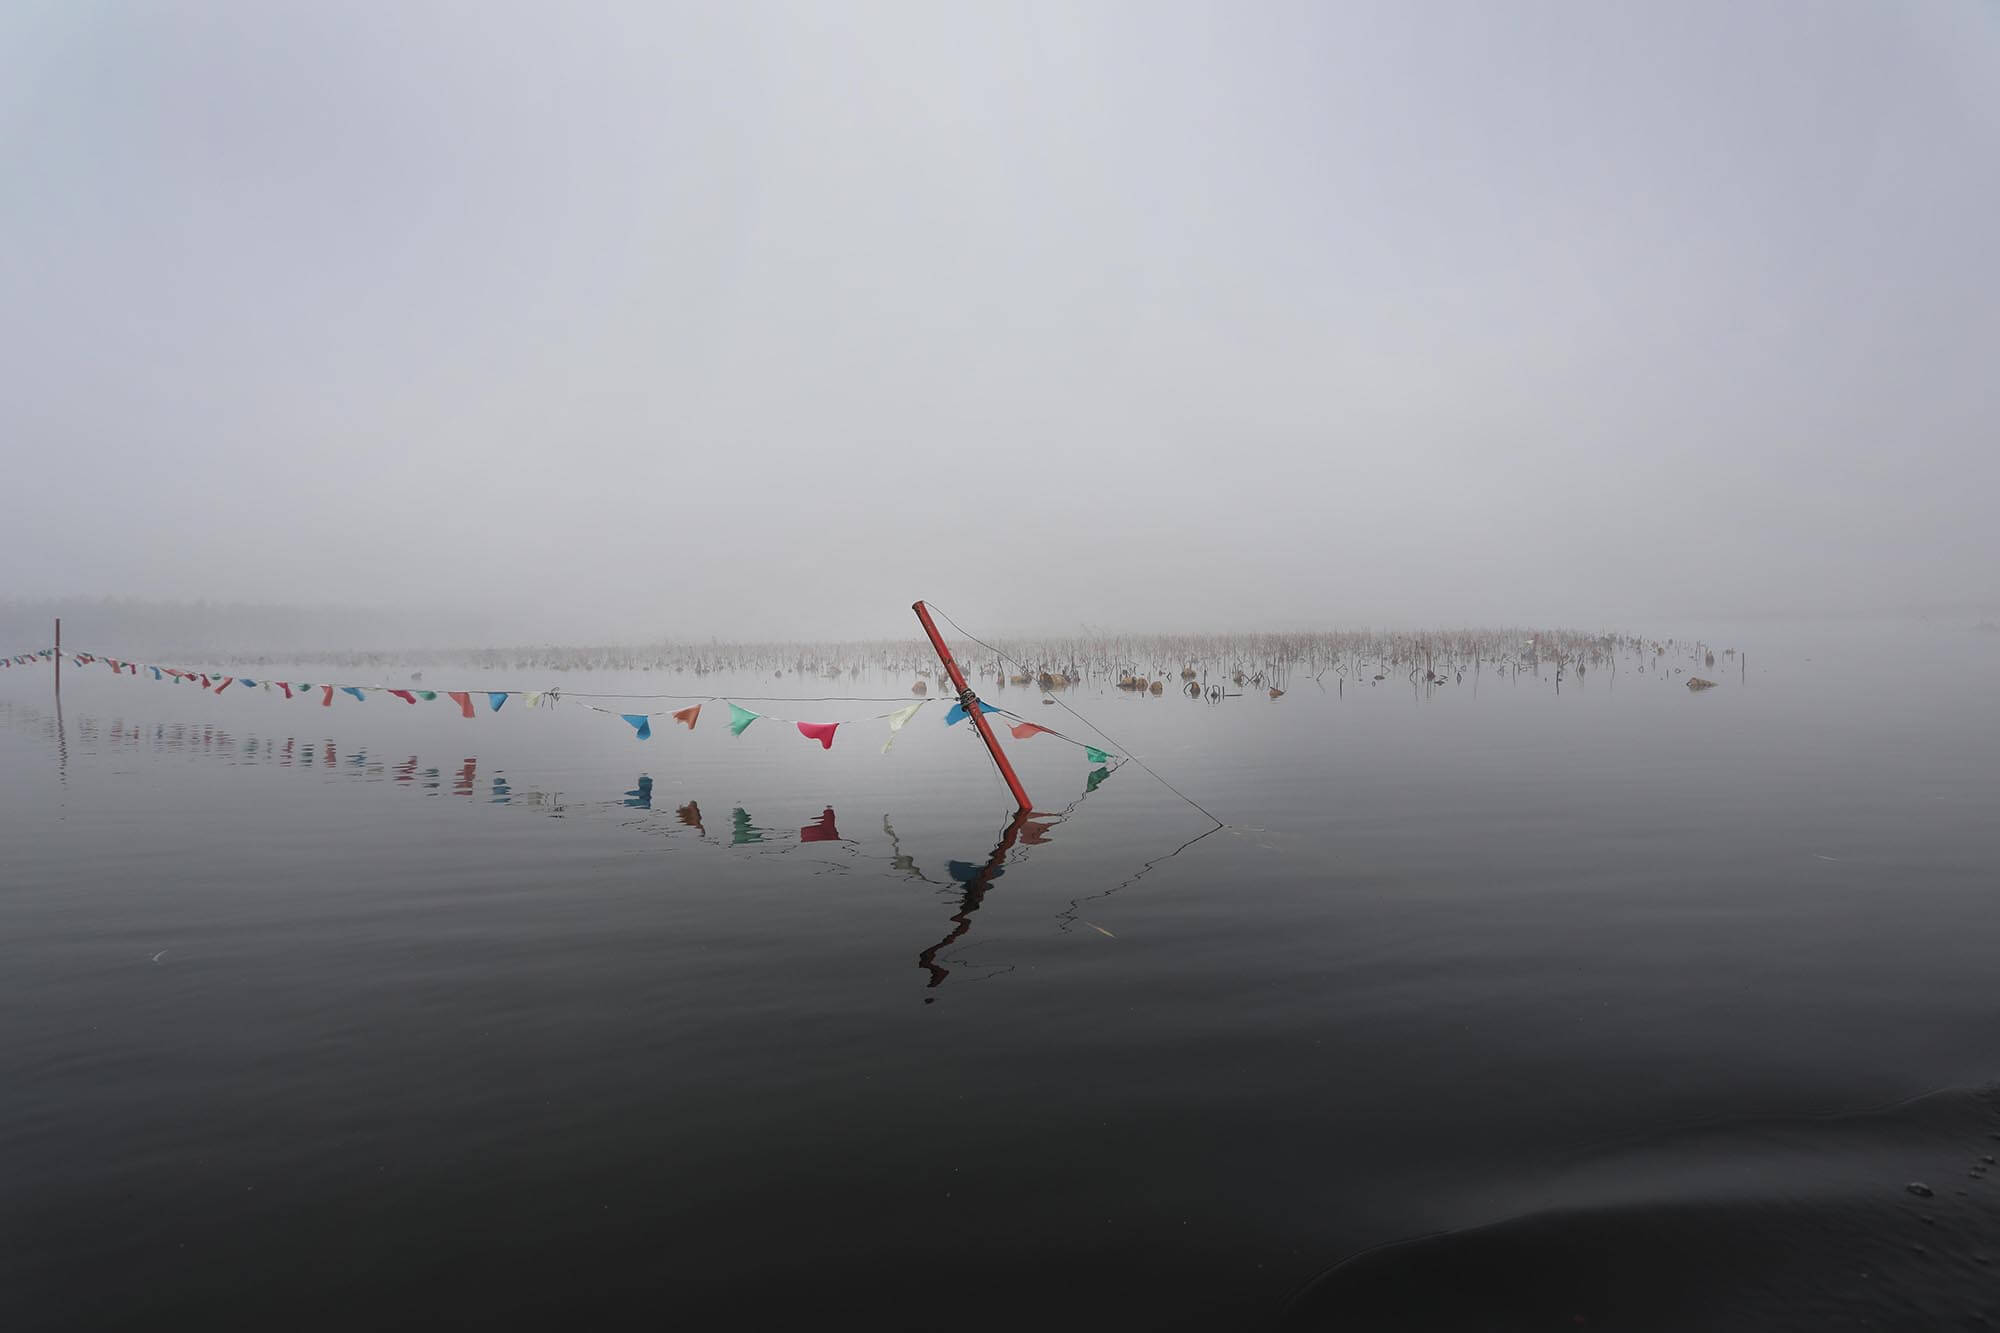 a line of small coloured flags is stretched between two posts in a broad, still, shallow lake. Rubbish sits among the reeds.